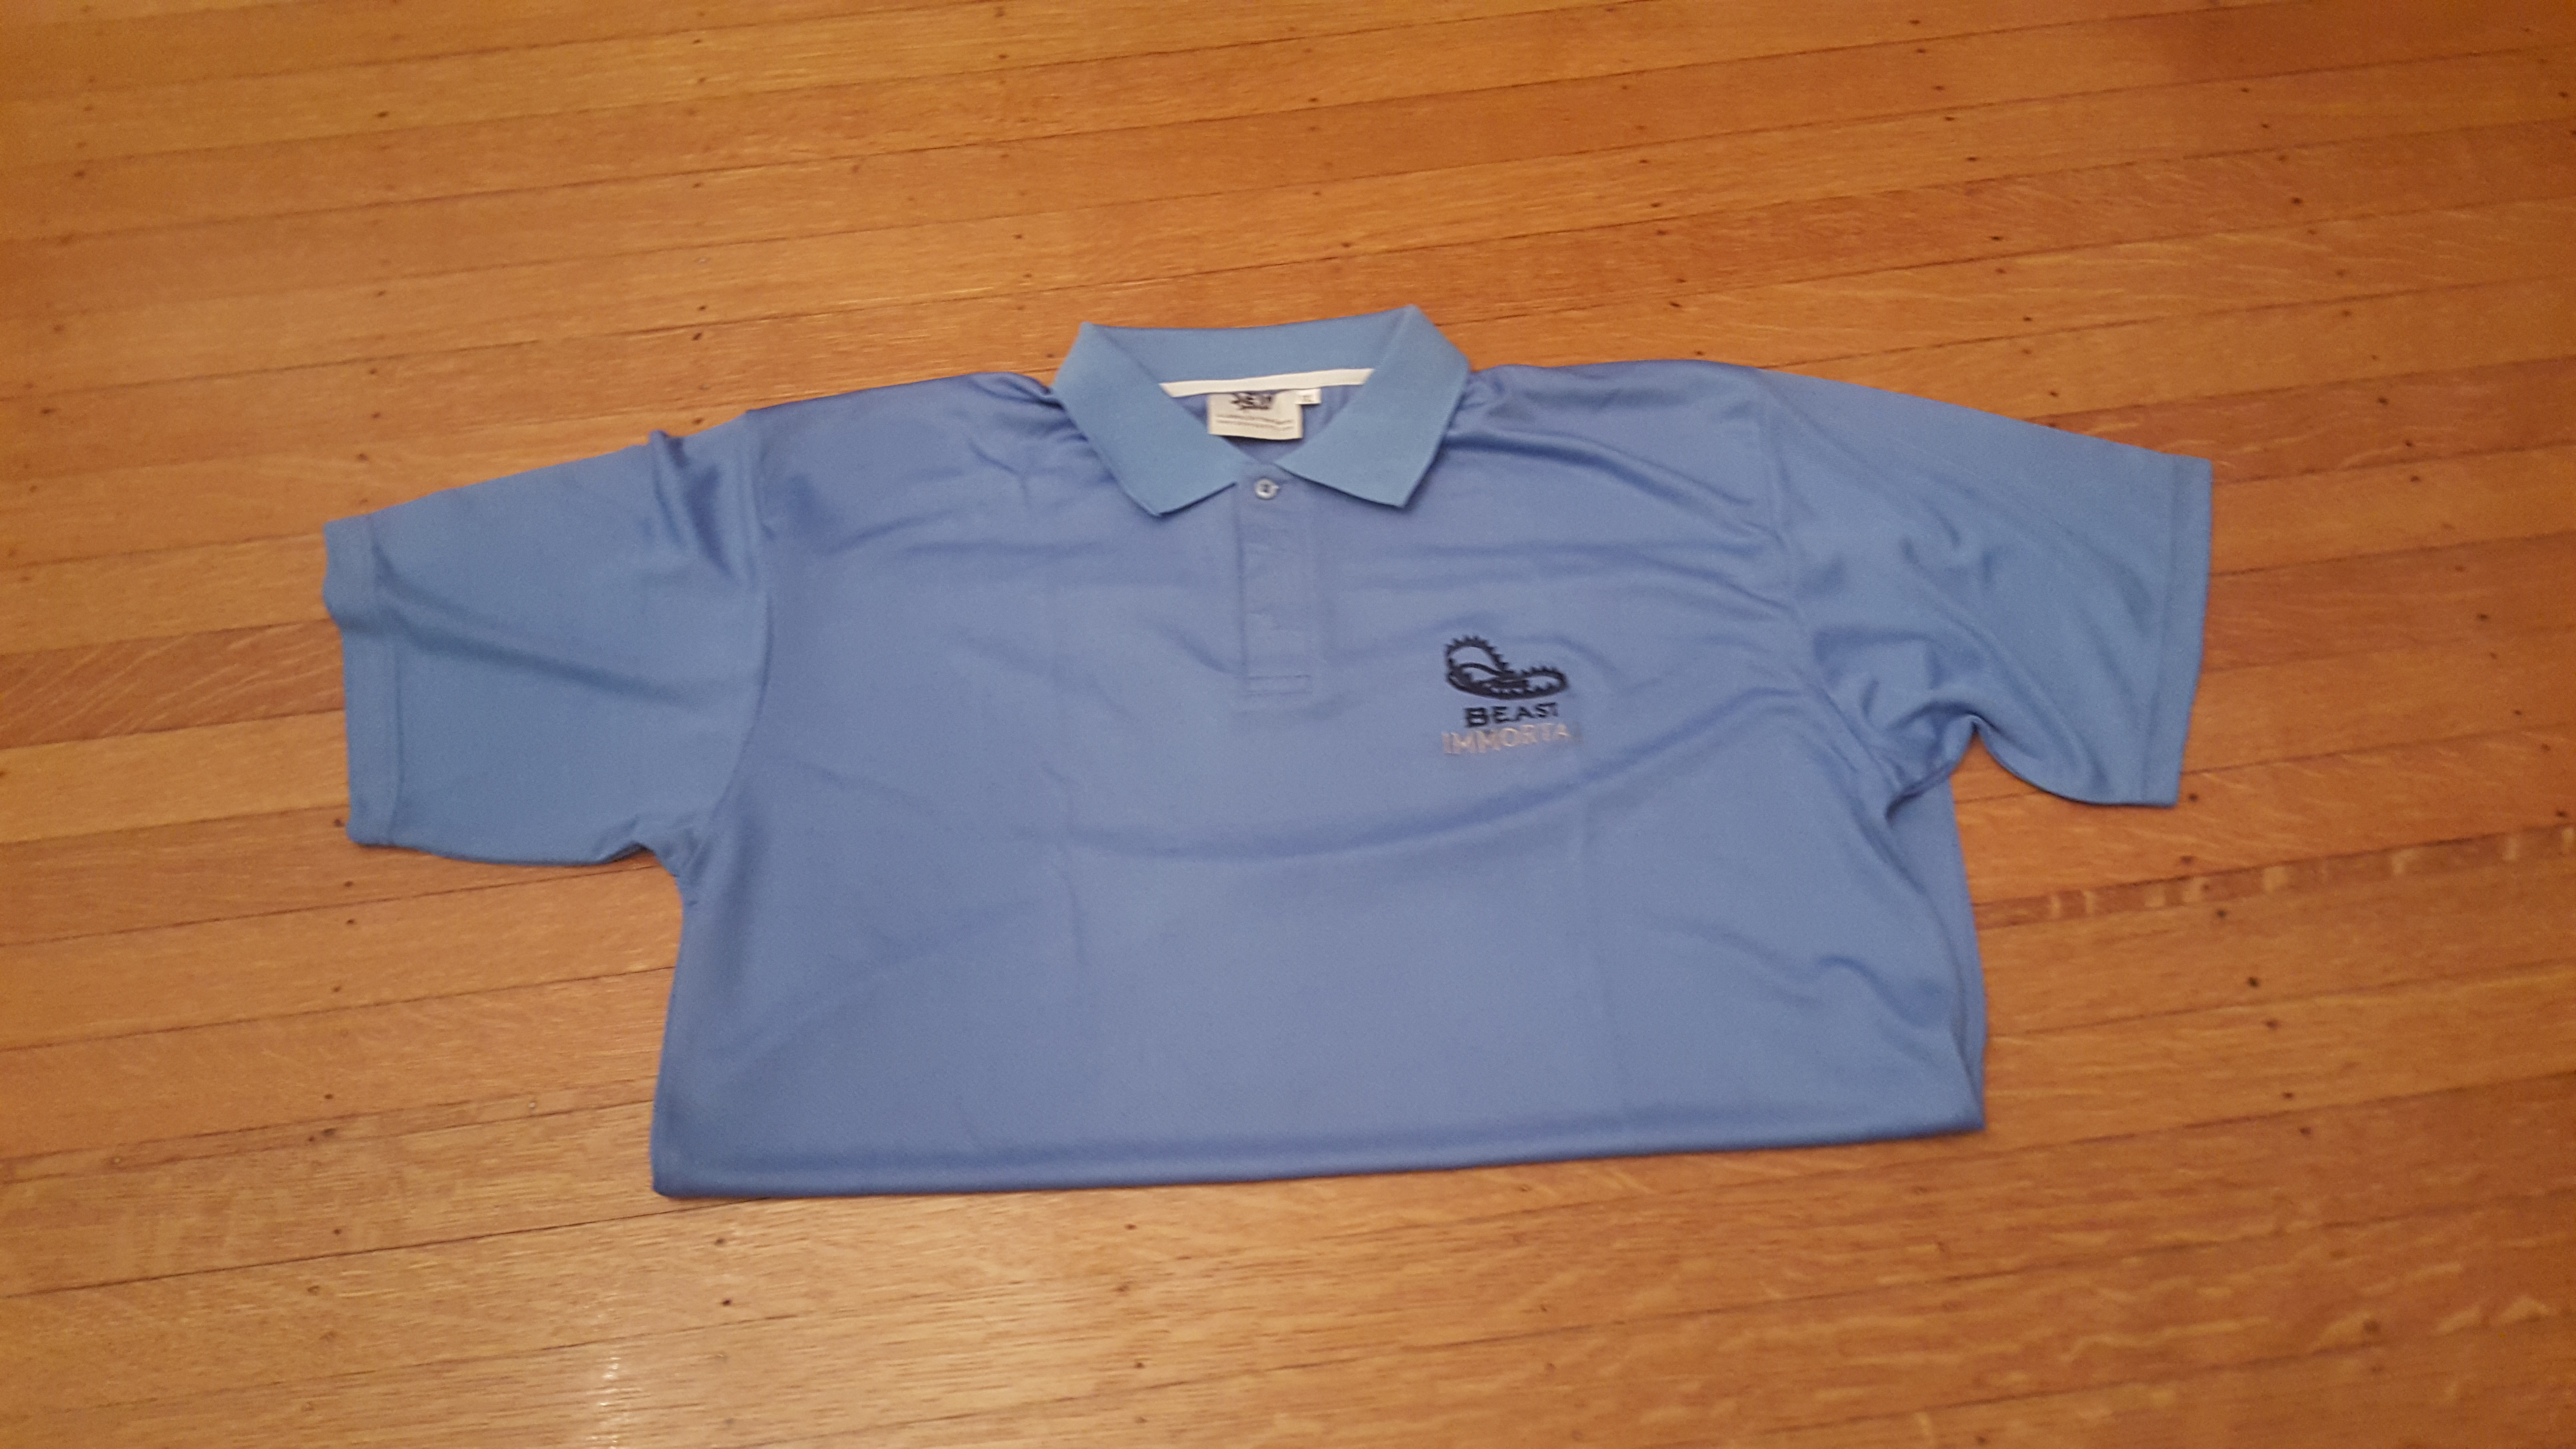 Beast Immortal dri-fit light blue polo shirt 00026